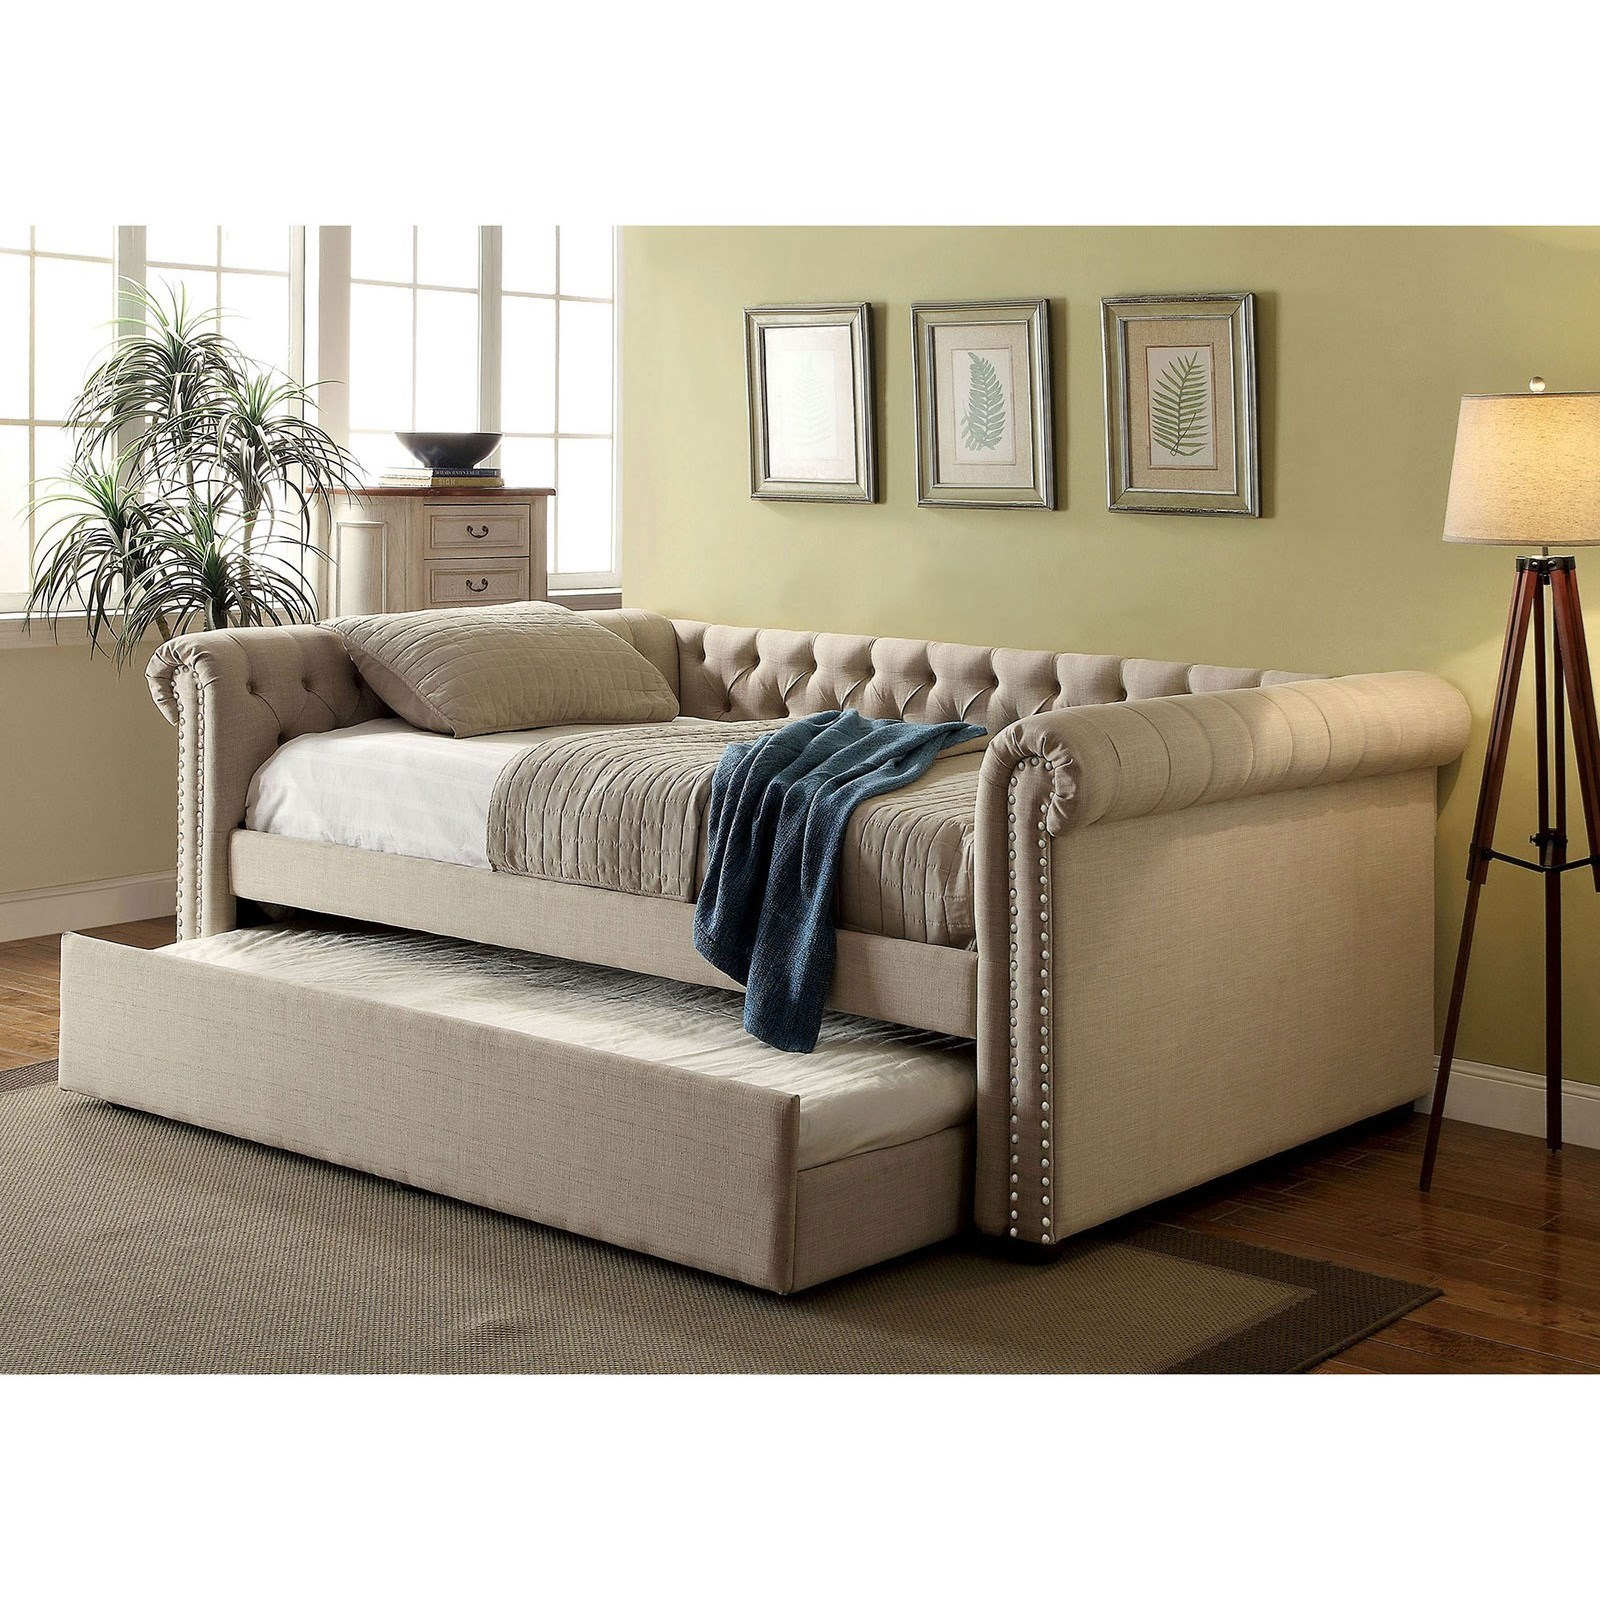 leanna full daybed w trundle